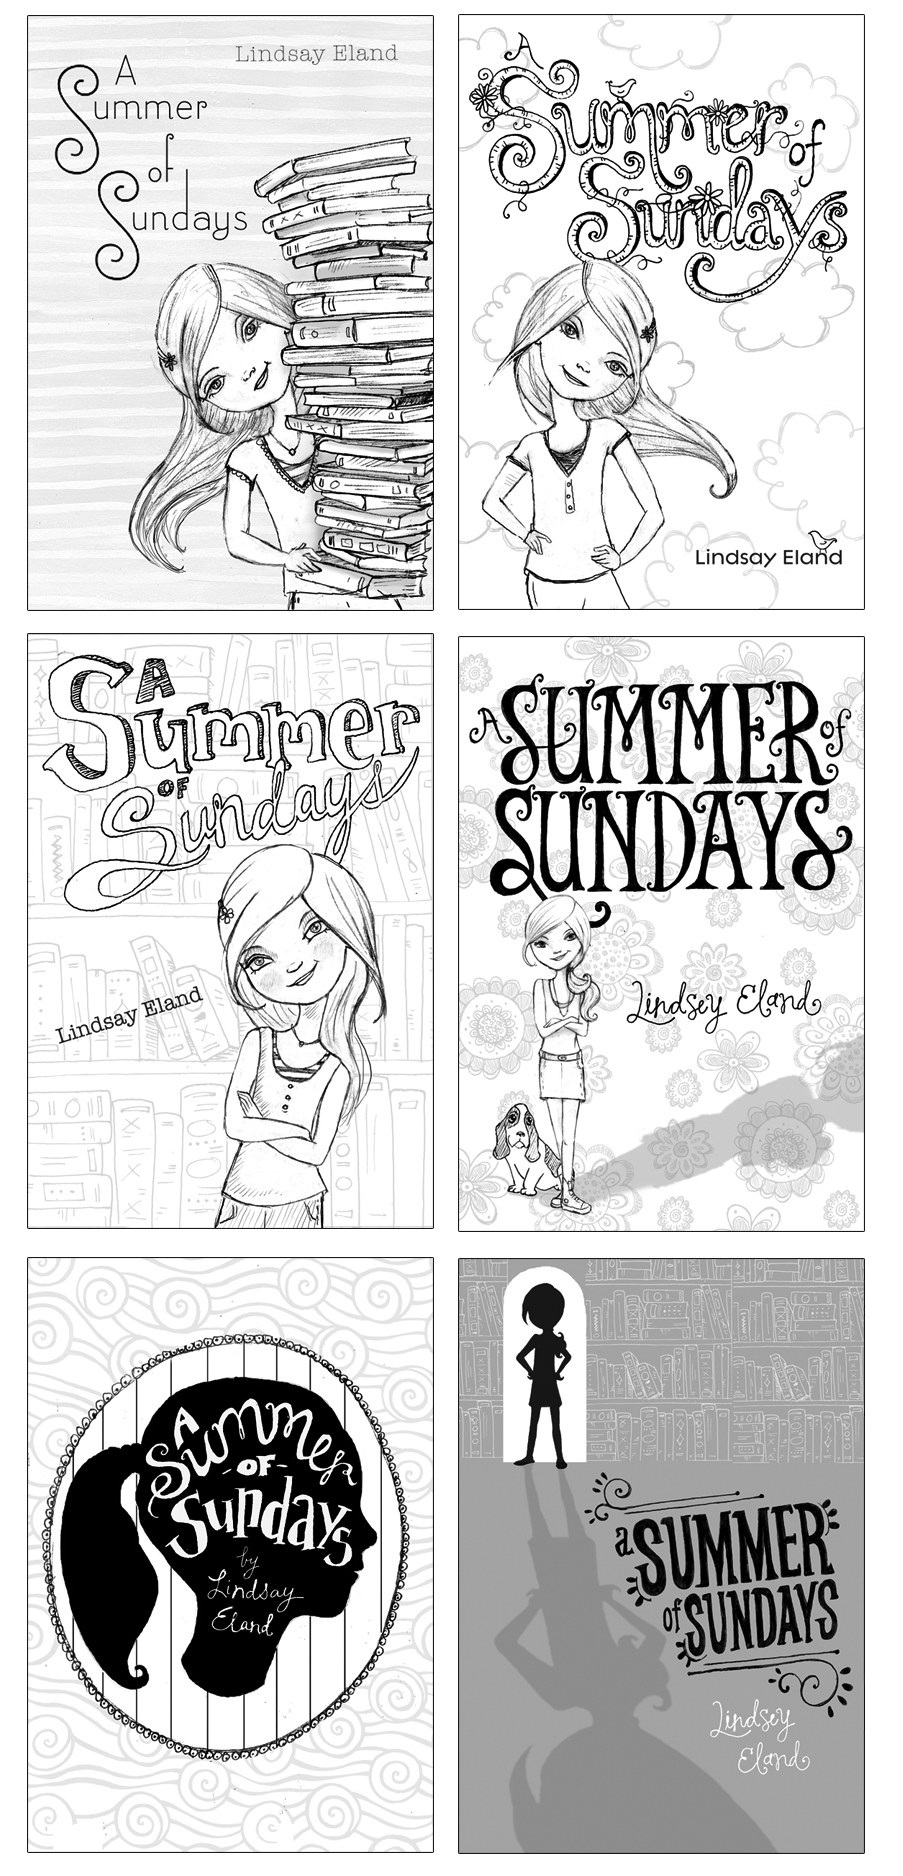 Summer of Sundays Sketches